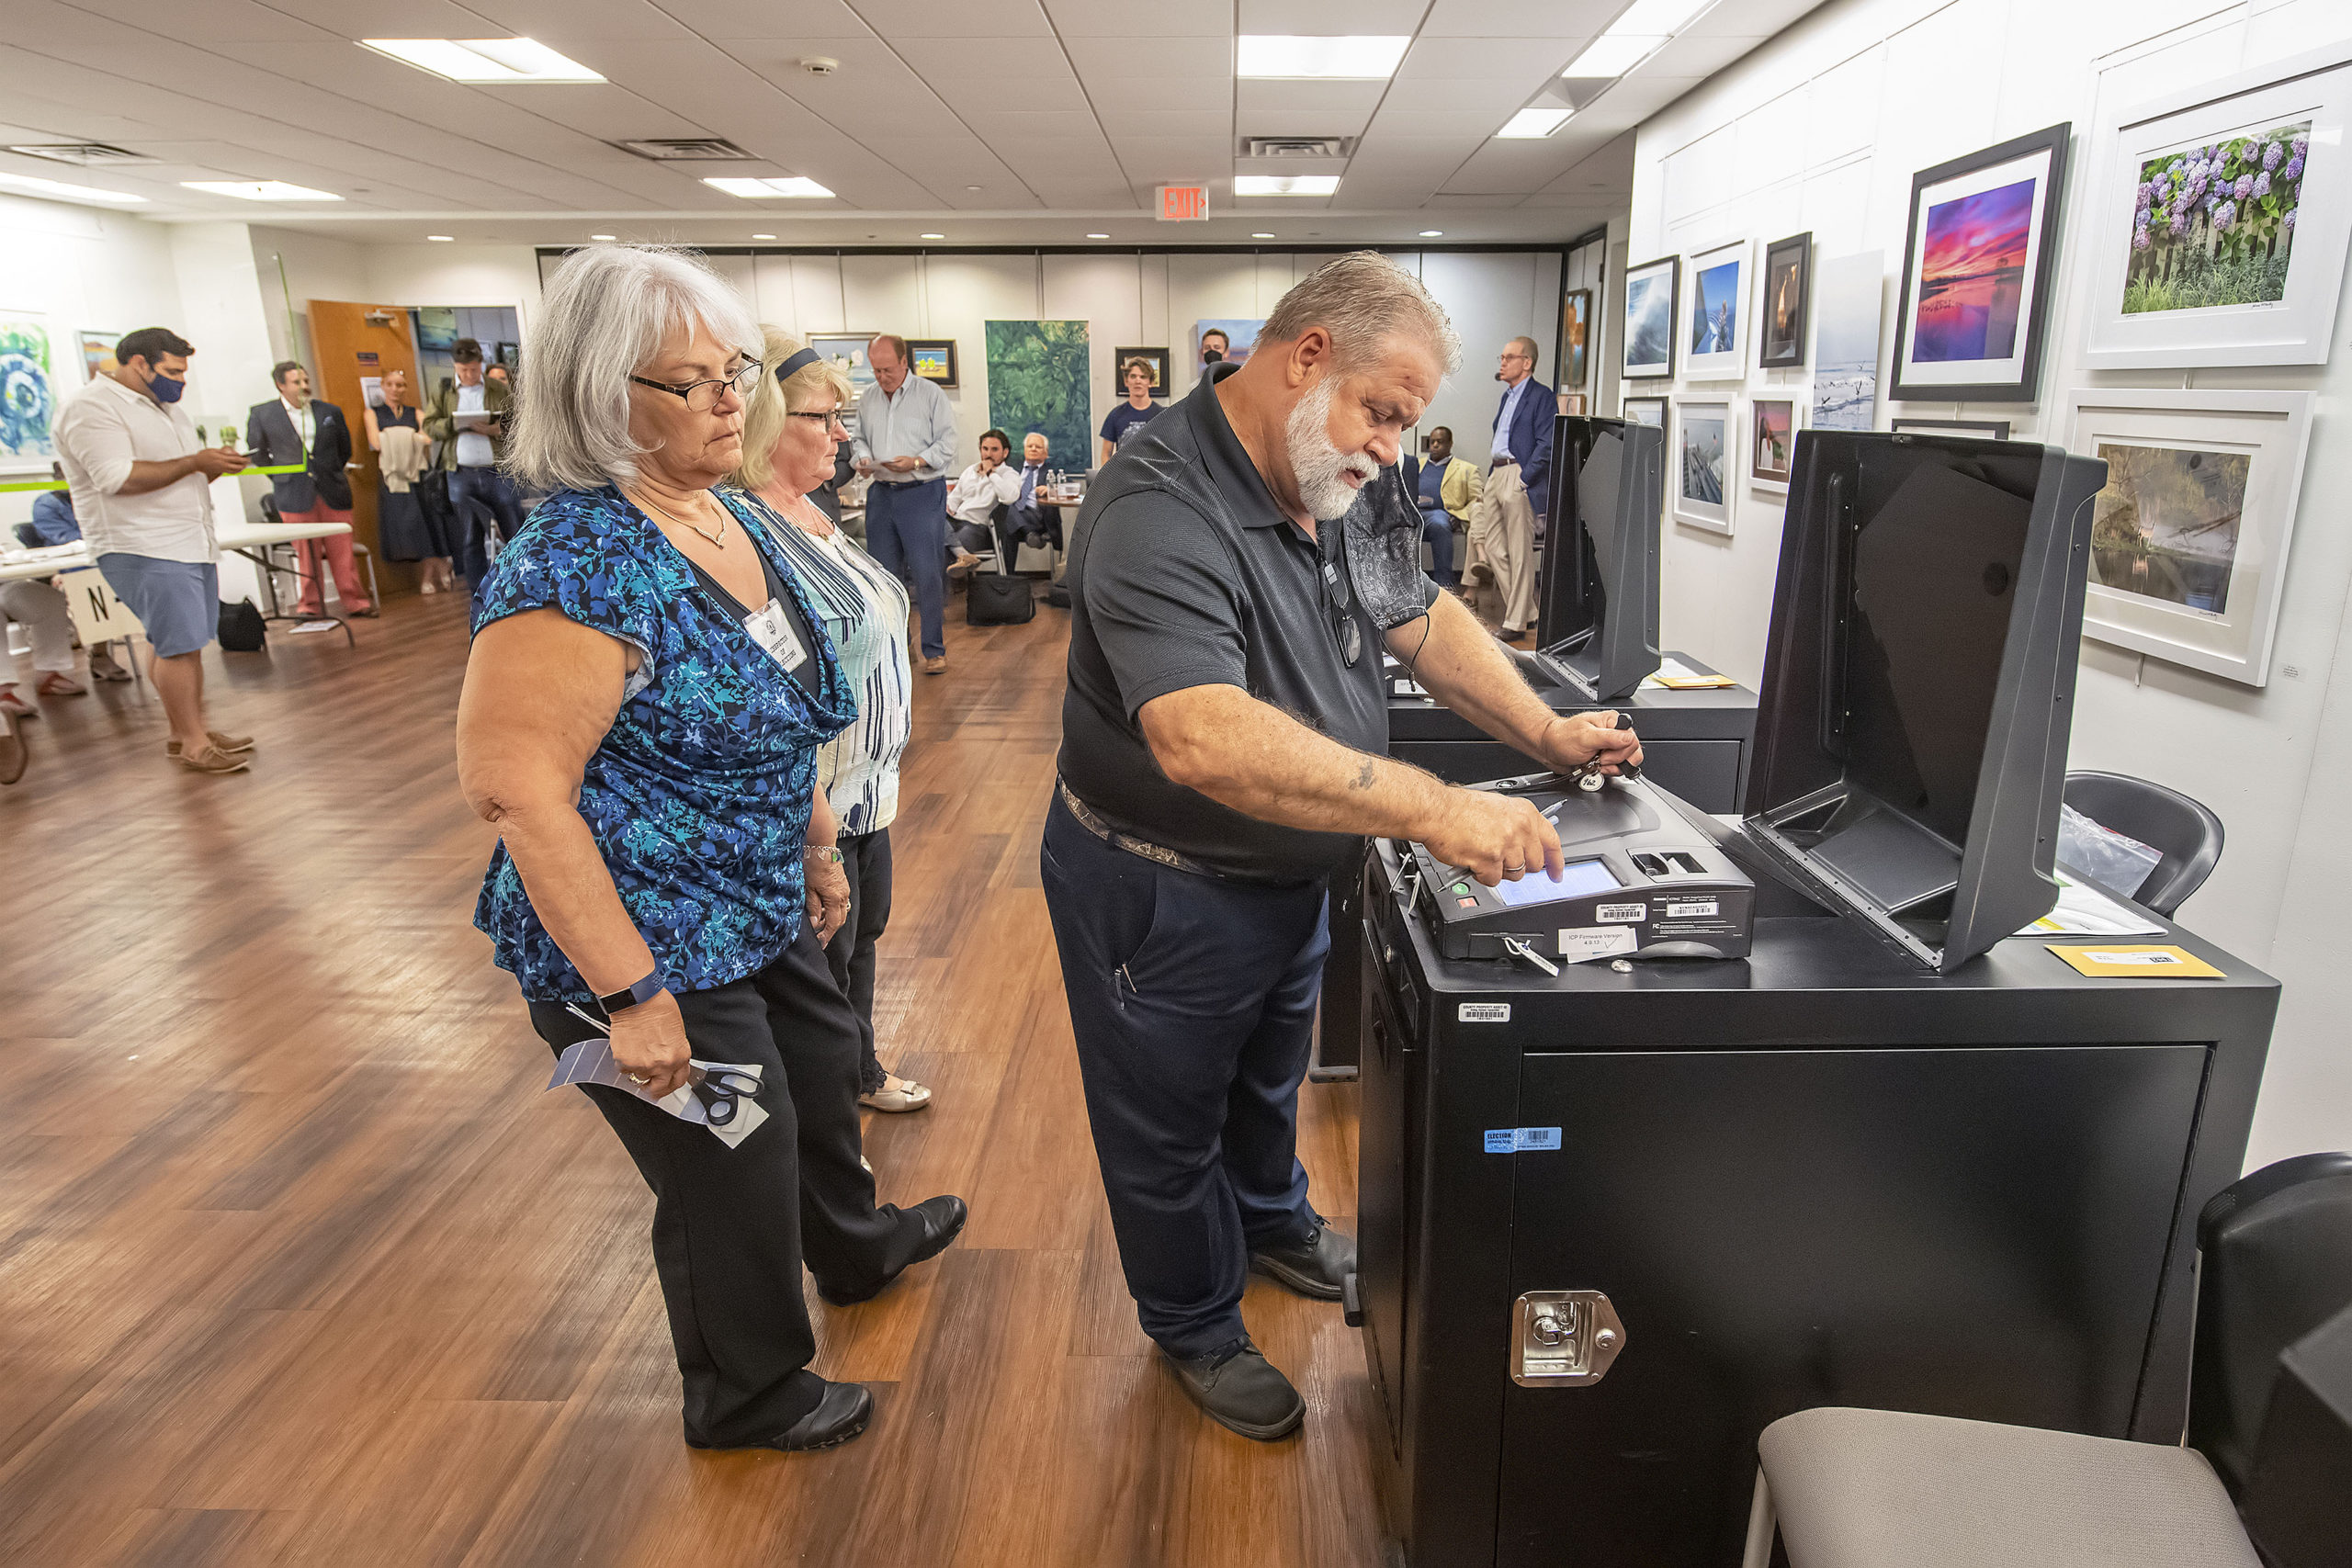 Election Inspectors look on as an election official retrieves the vote count from a voting machine during the 2021 Southampton Village Mayoral election at the Southampton Cultural Center on Friday night. MICHAEL HELLER